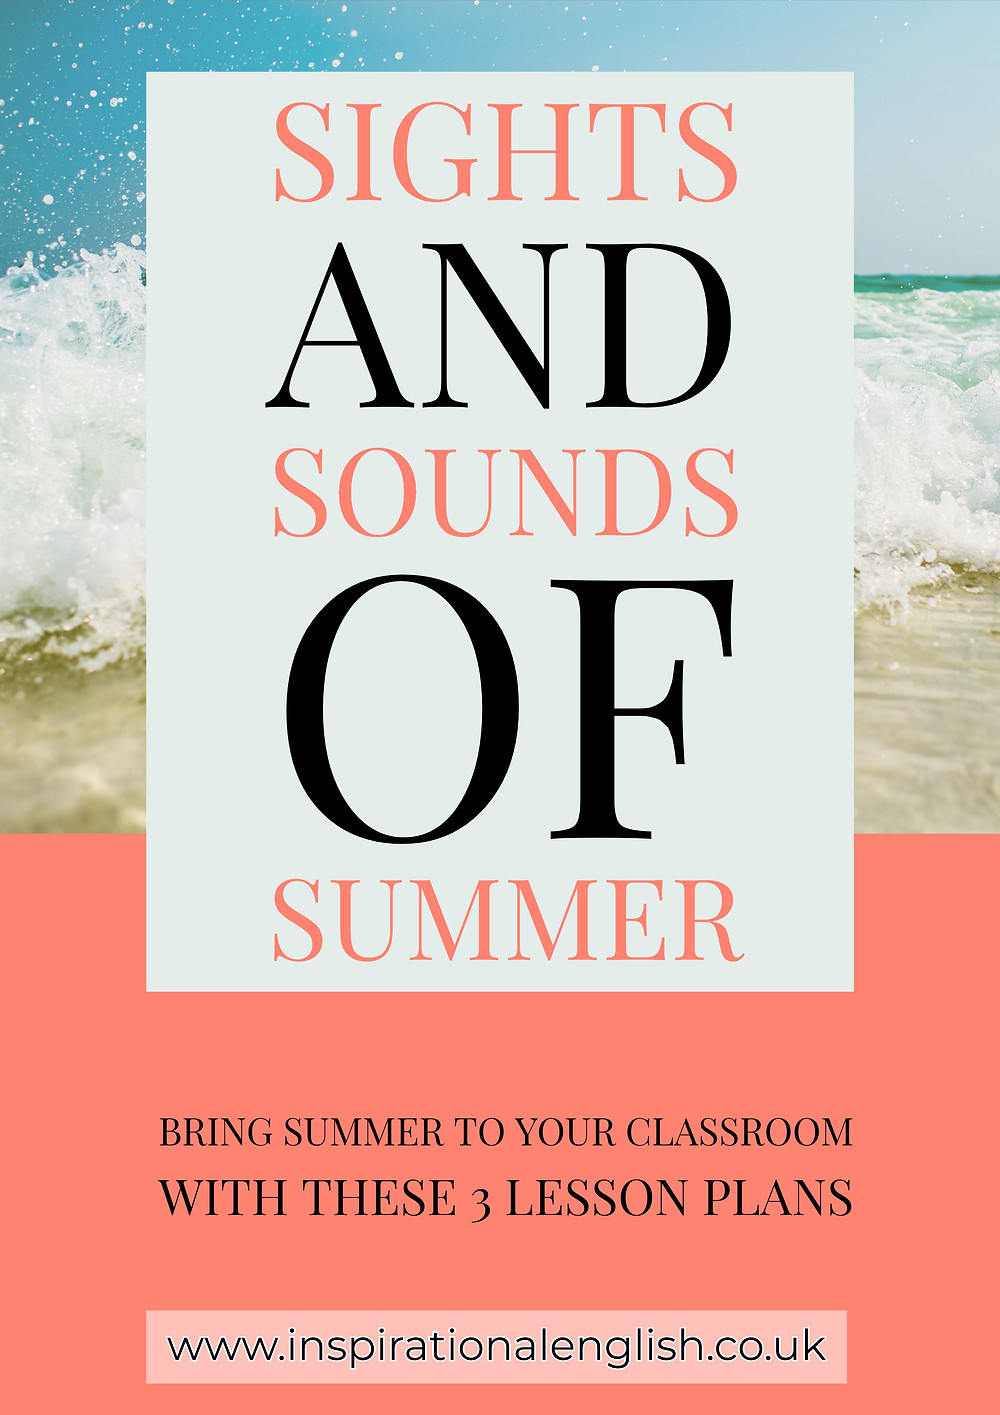 """Sights and Sounds of Summer"" includes three lesson plans:  1. The little butterfly  2.The prettiest pebble  3. Summer memories  Each lesson plan is based around a poem. I've created comprehension activities as well as a powerful visualisation which wake up your students' senses.  The lessons are a gentle mix of positive psychology and modern teaching."